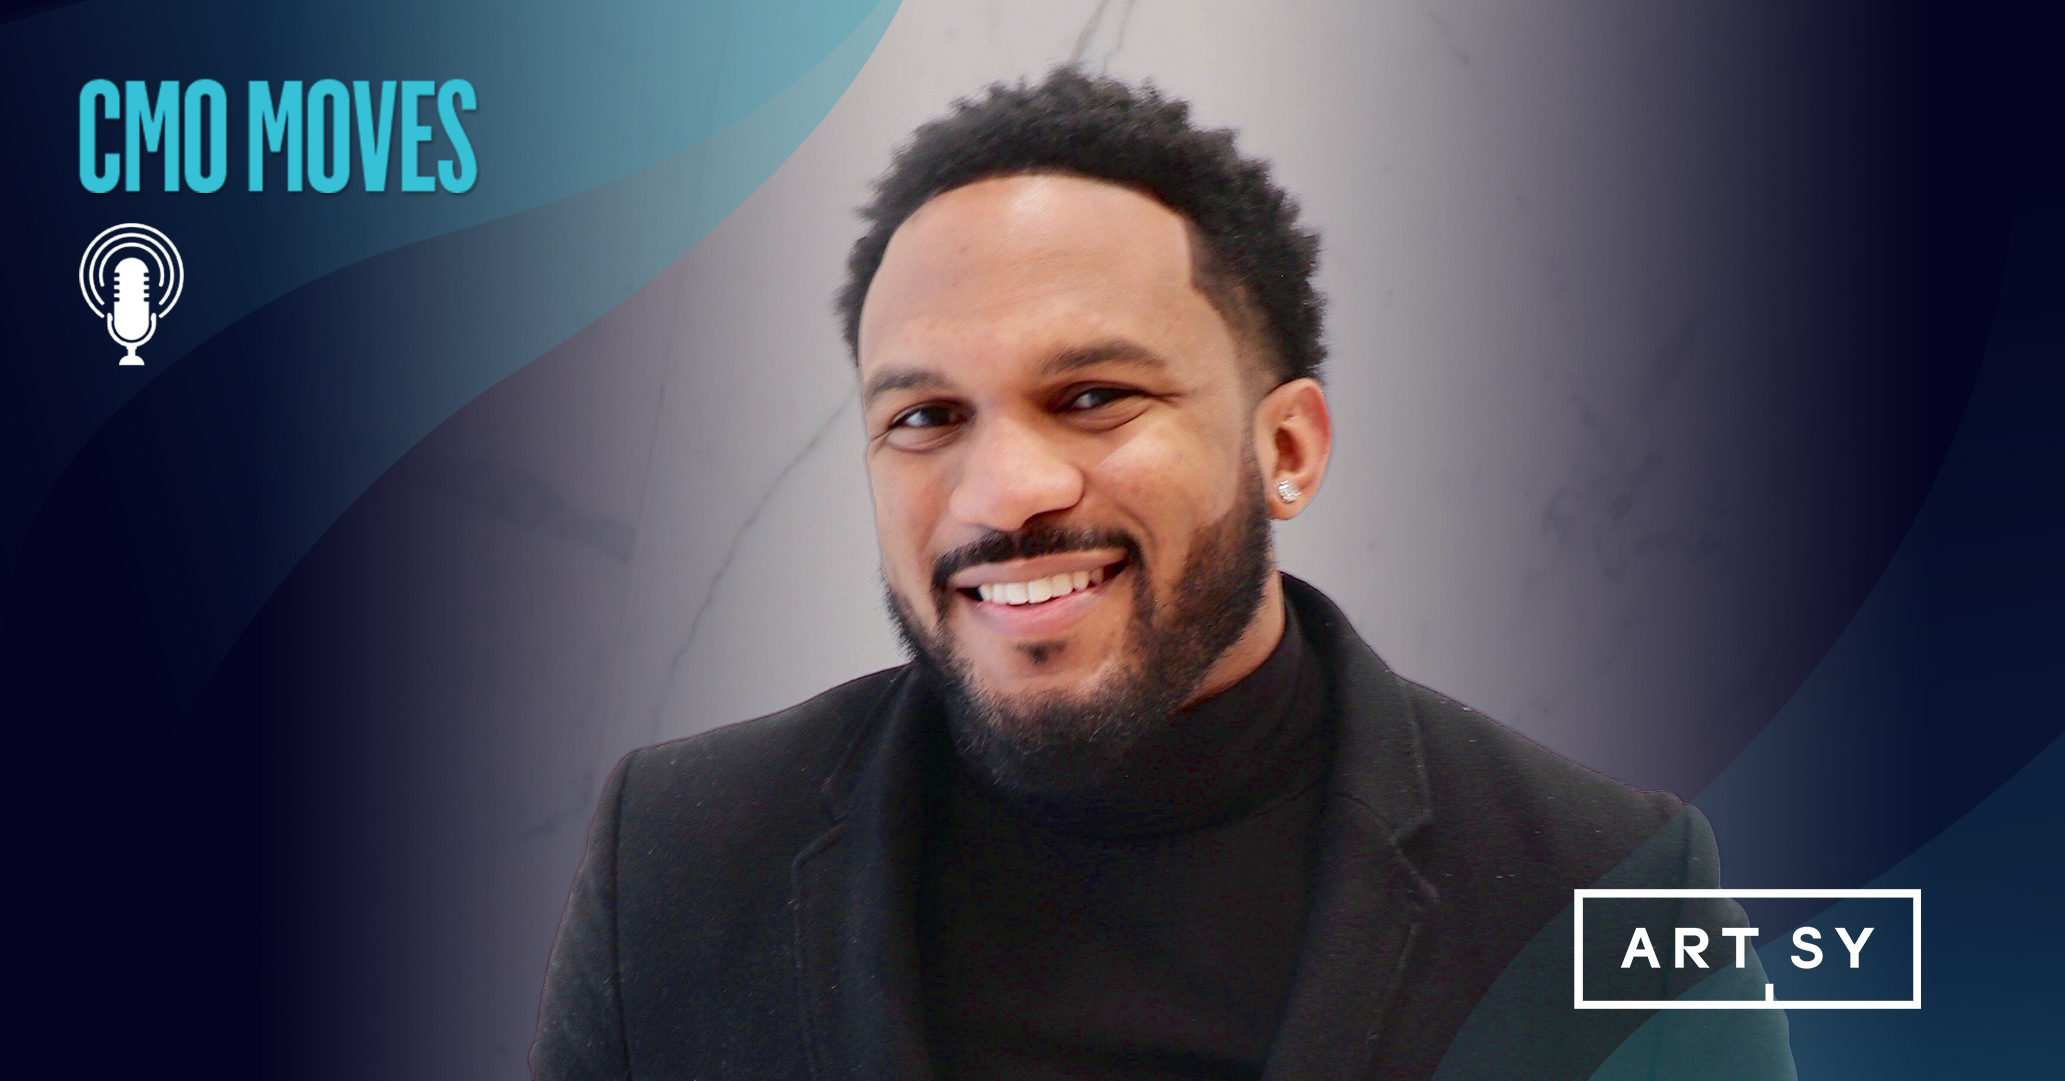 Photo of Everette Taylor with the CMO Moves podcast logo